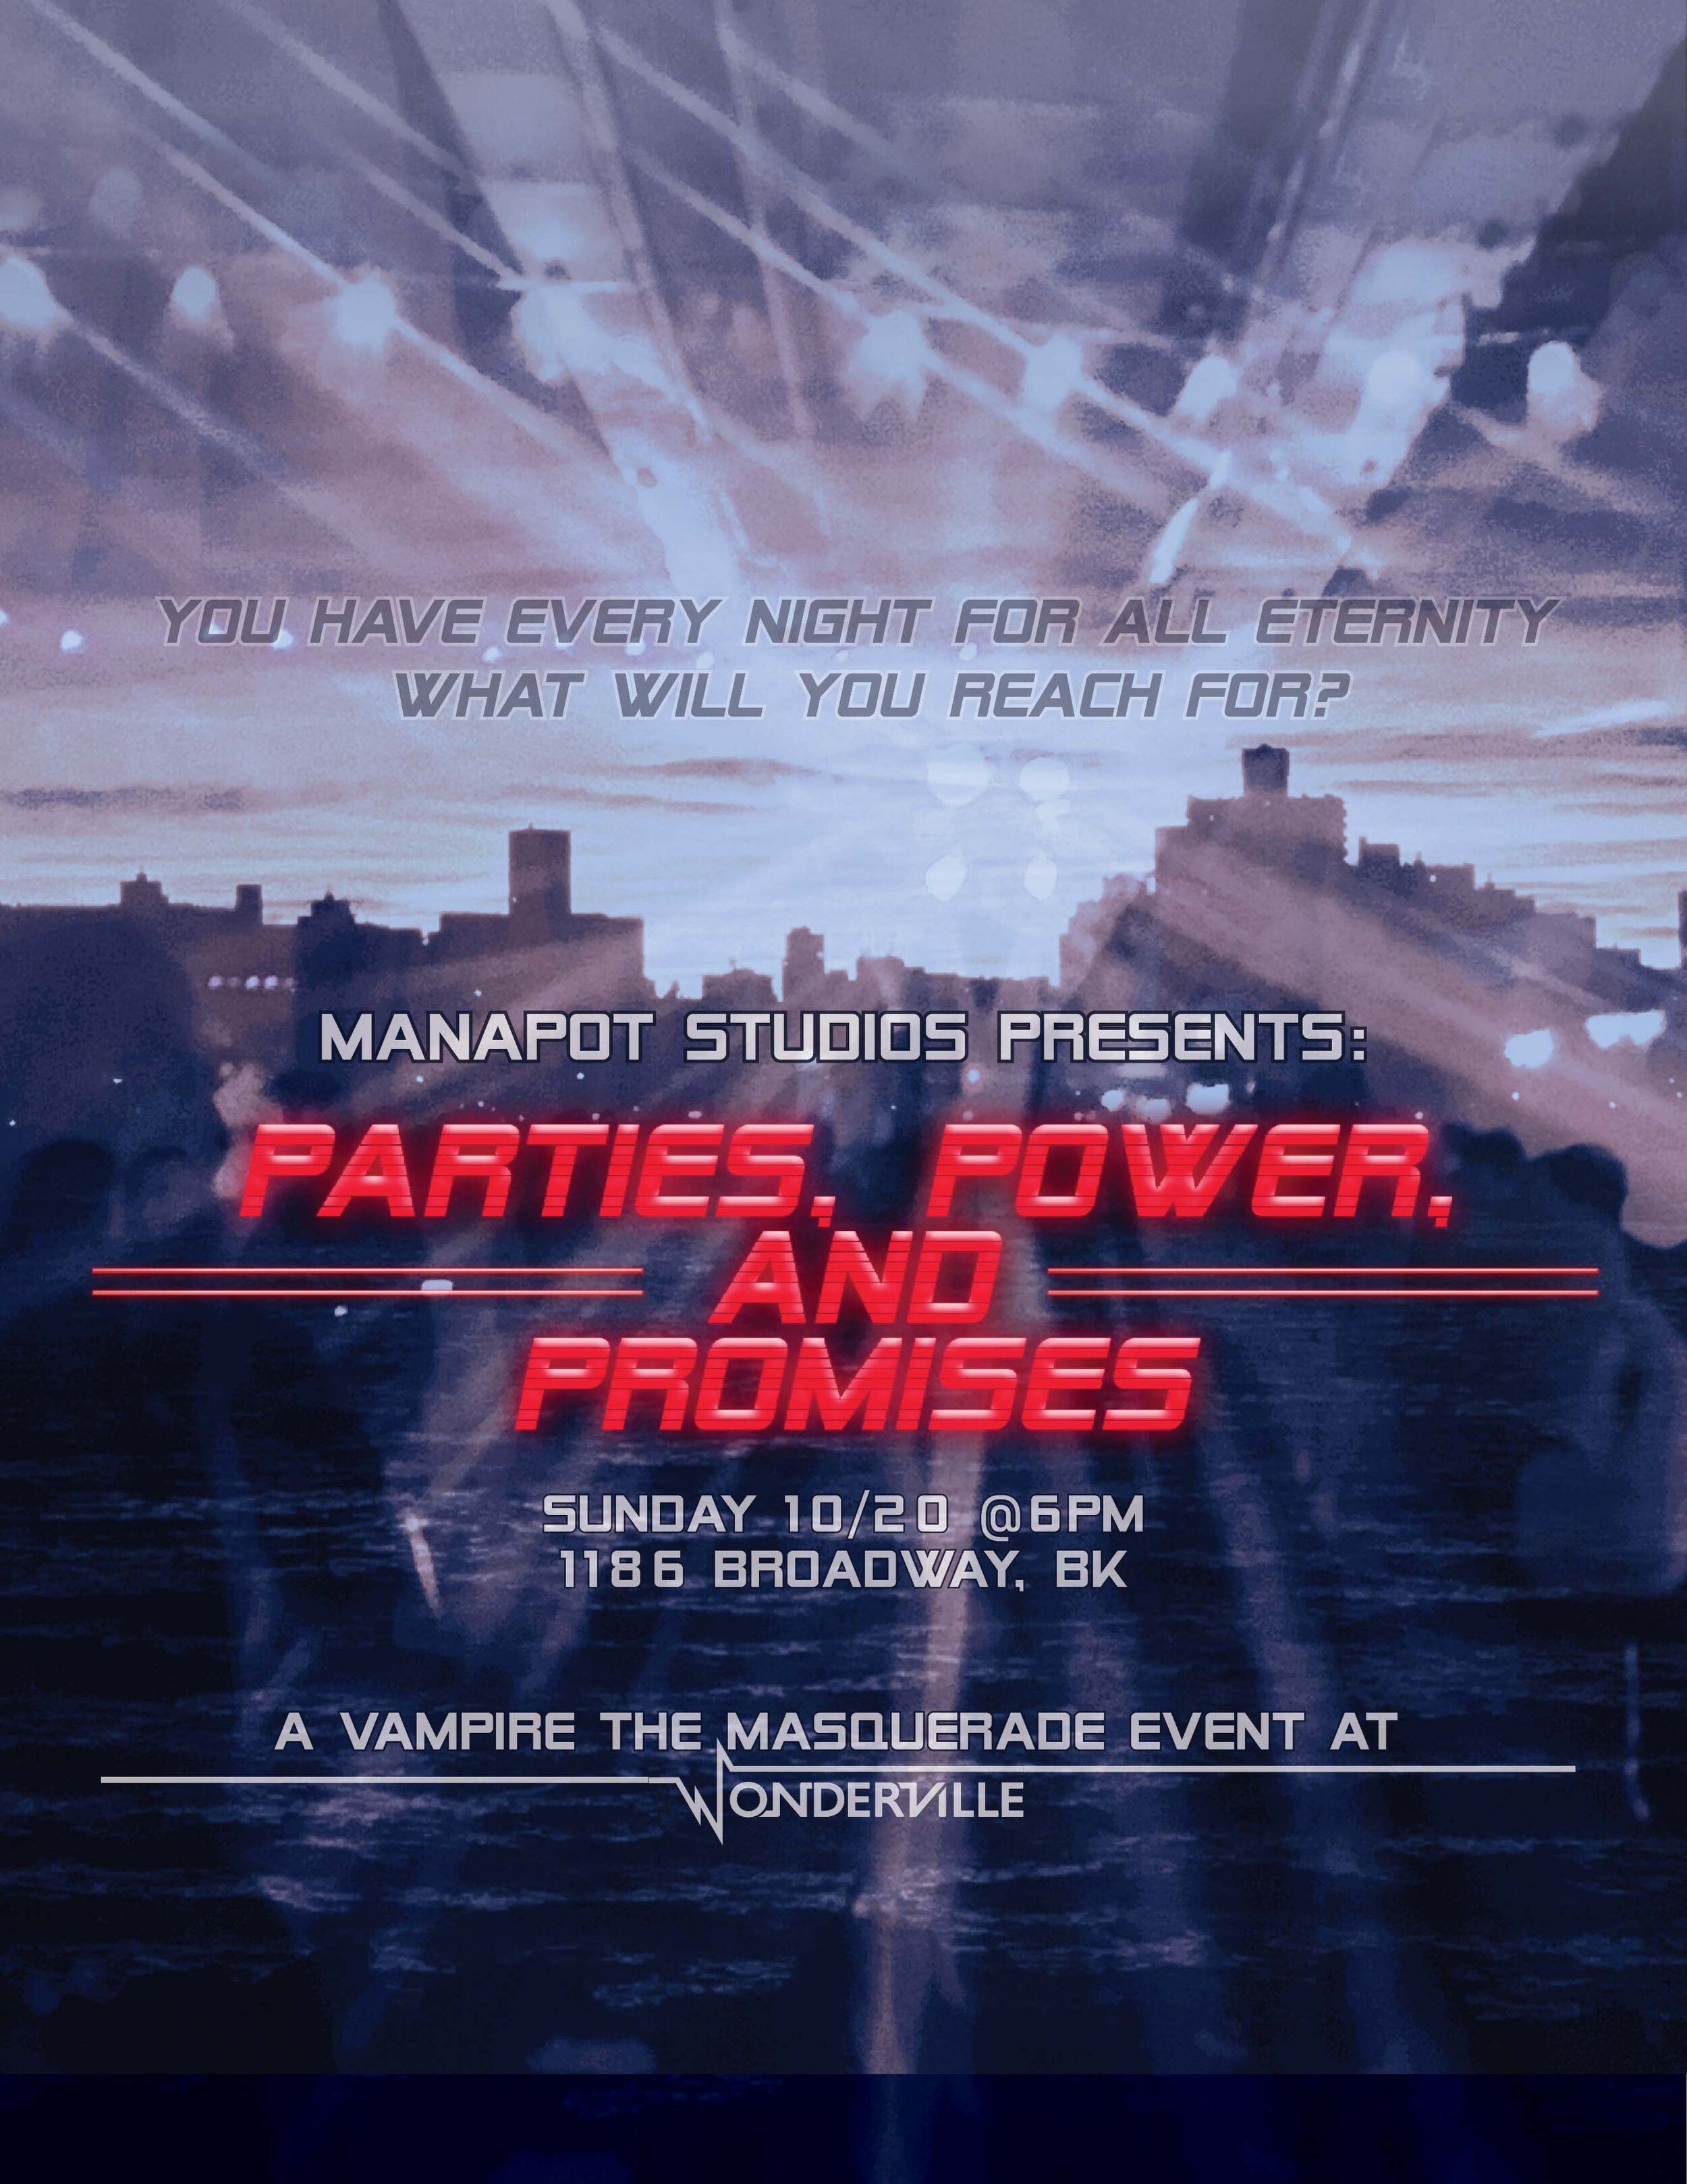 RSVP:  https://withfriends.co/event/2694629/parties_power_and_promises_a_vampire_the_masquerade_event